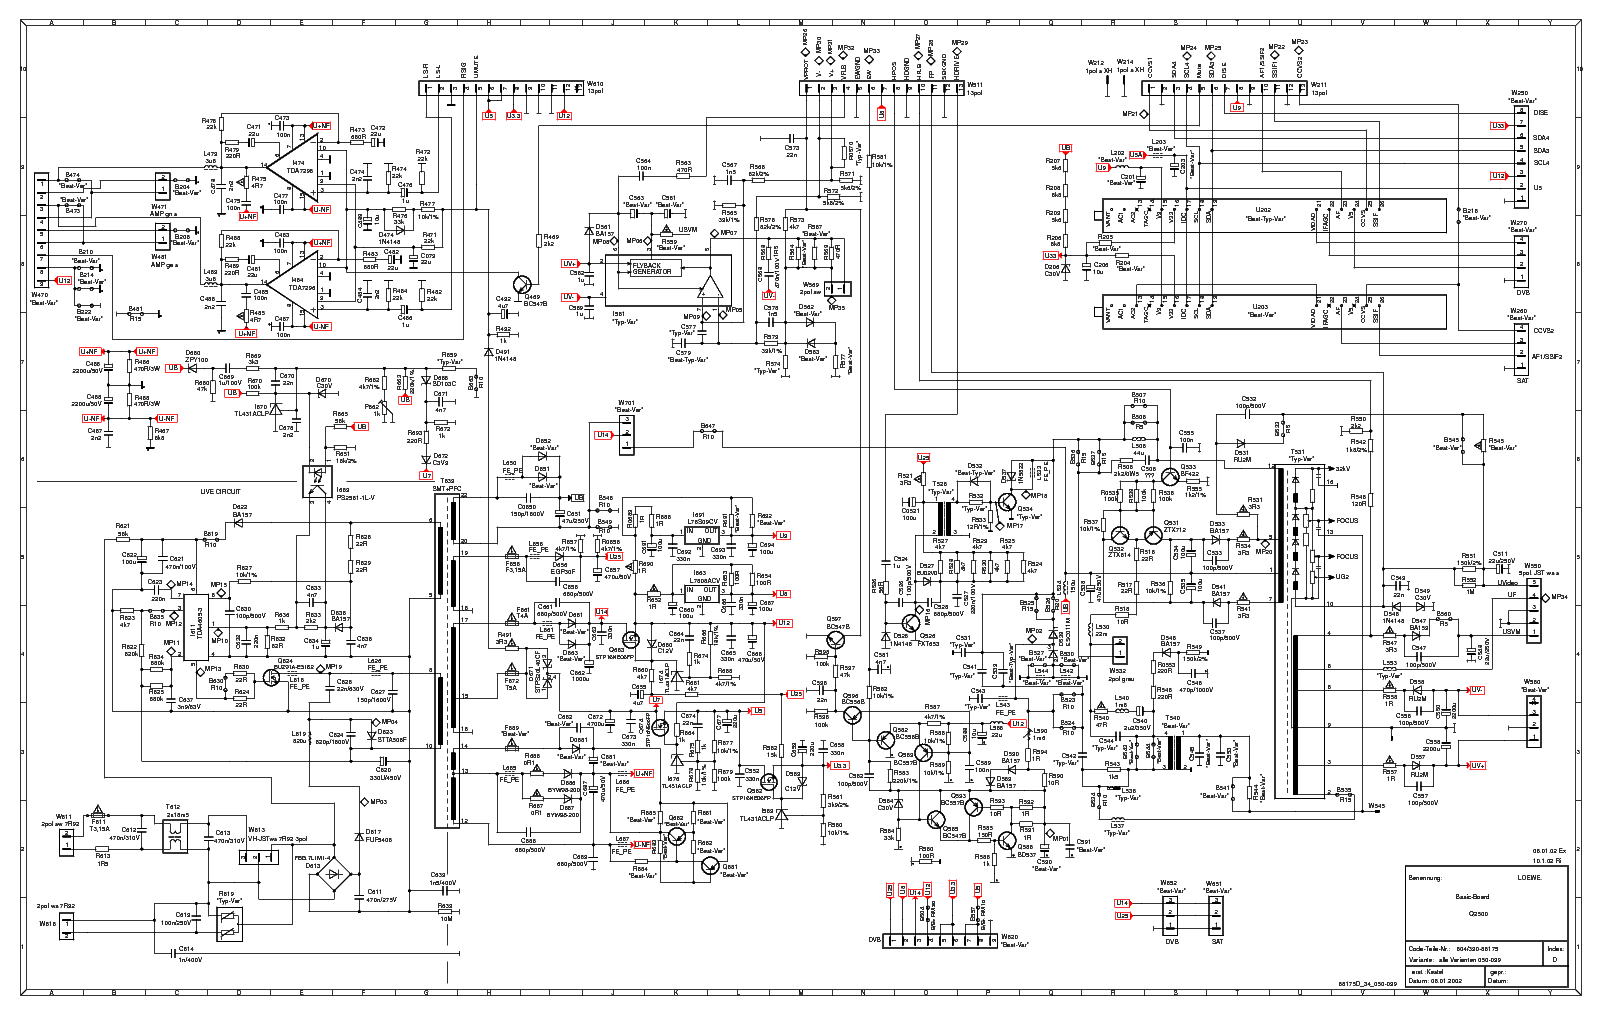 LOEWE CHASSIS Q2500 SCH service manual (1st page)